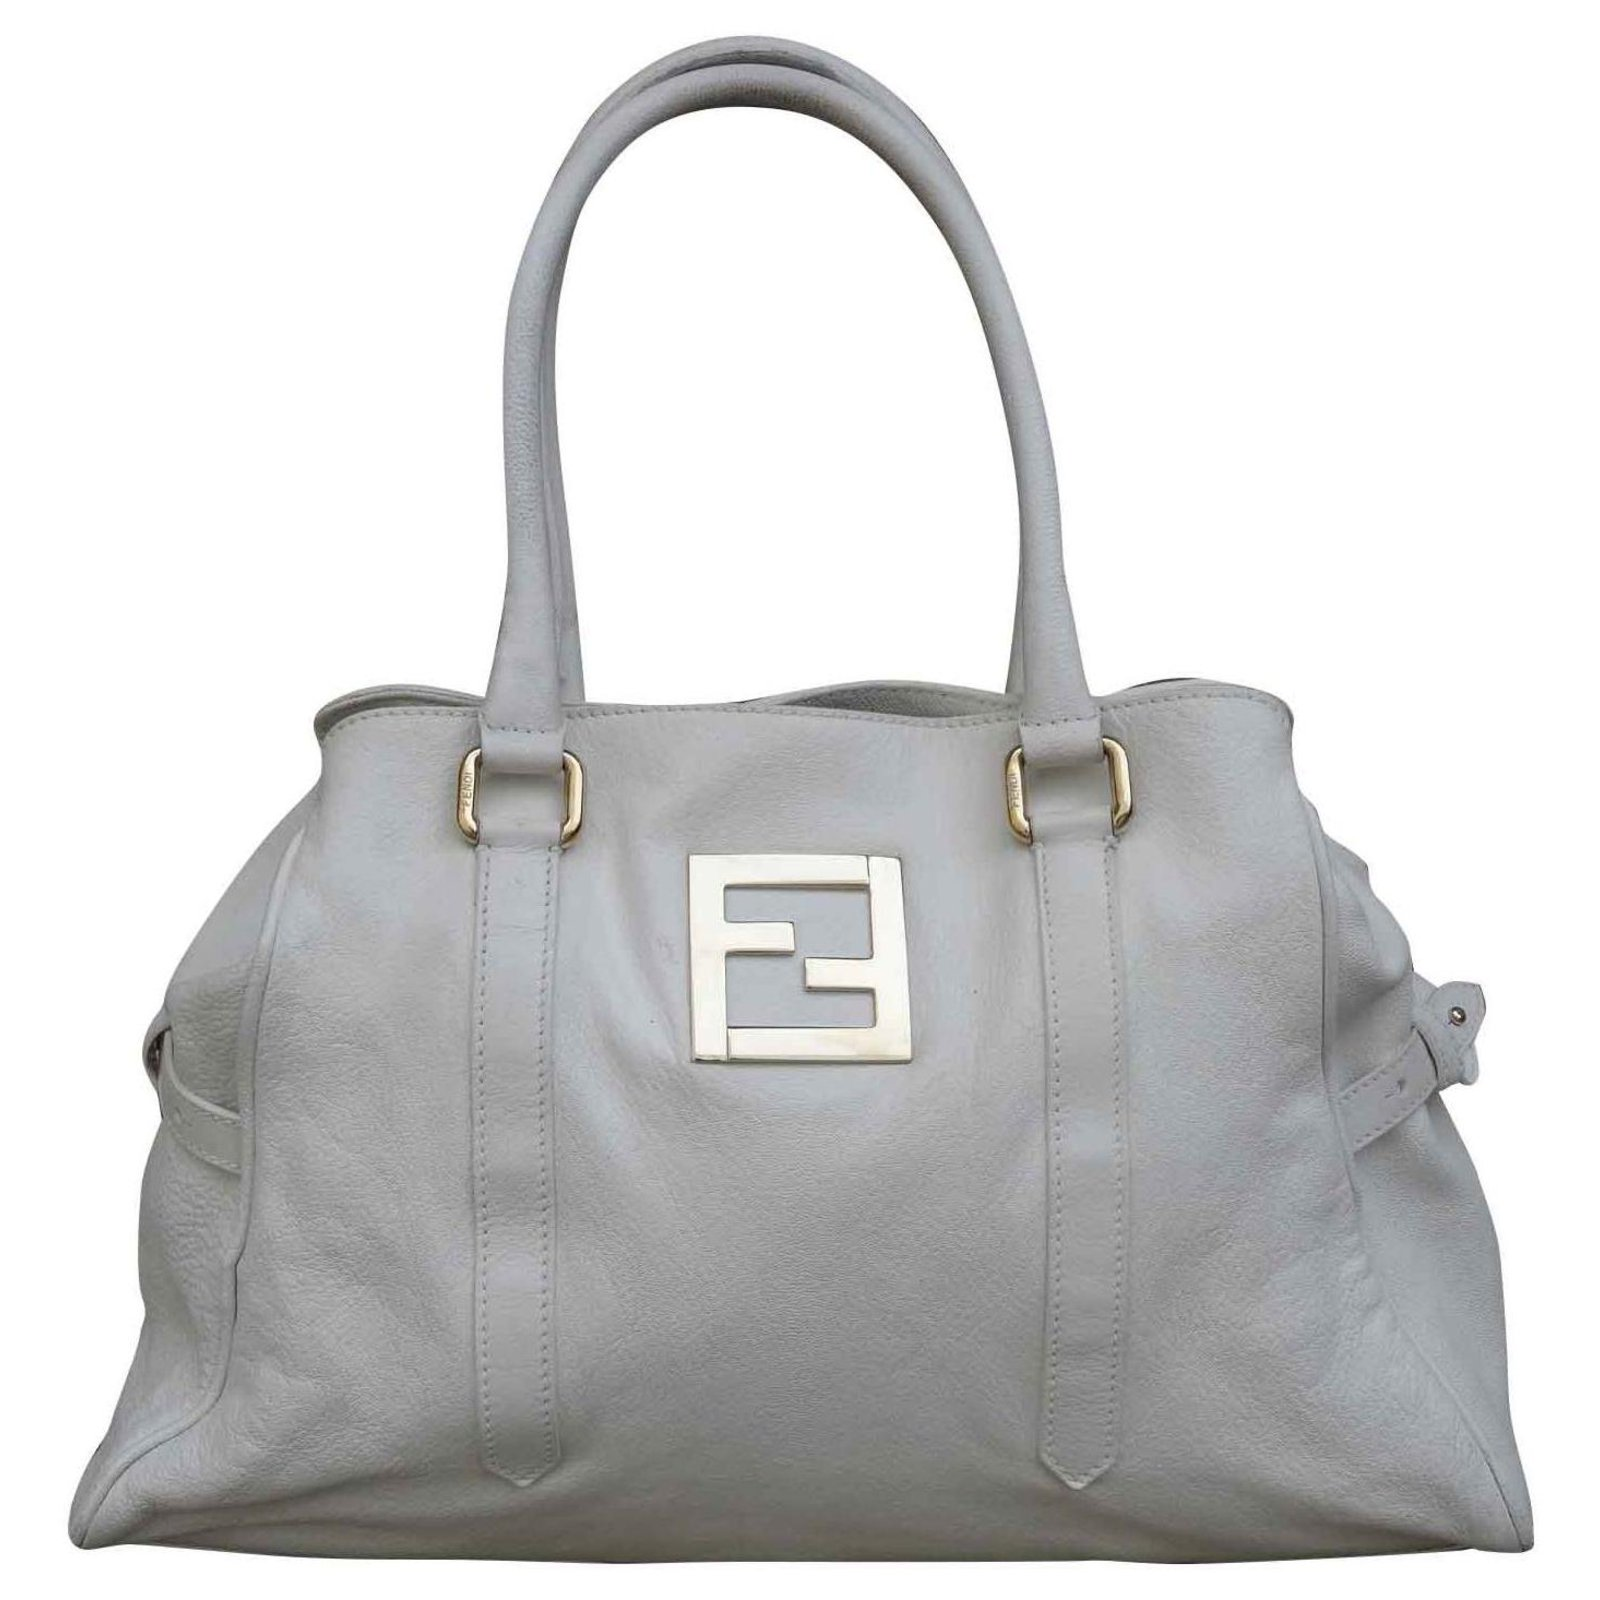 Fendi Bag Handbags Leather White Ref 141537 Joli Closet